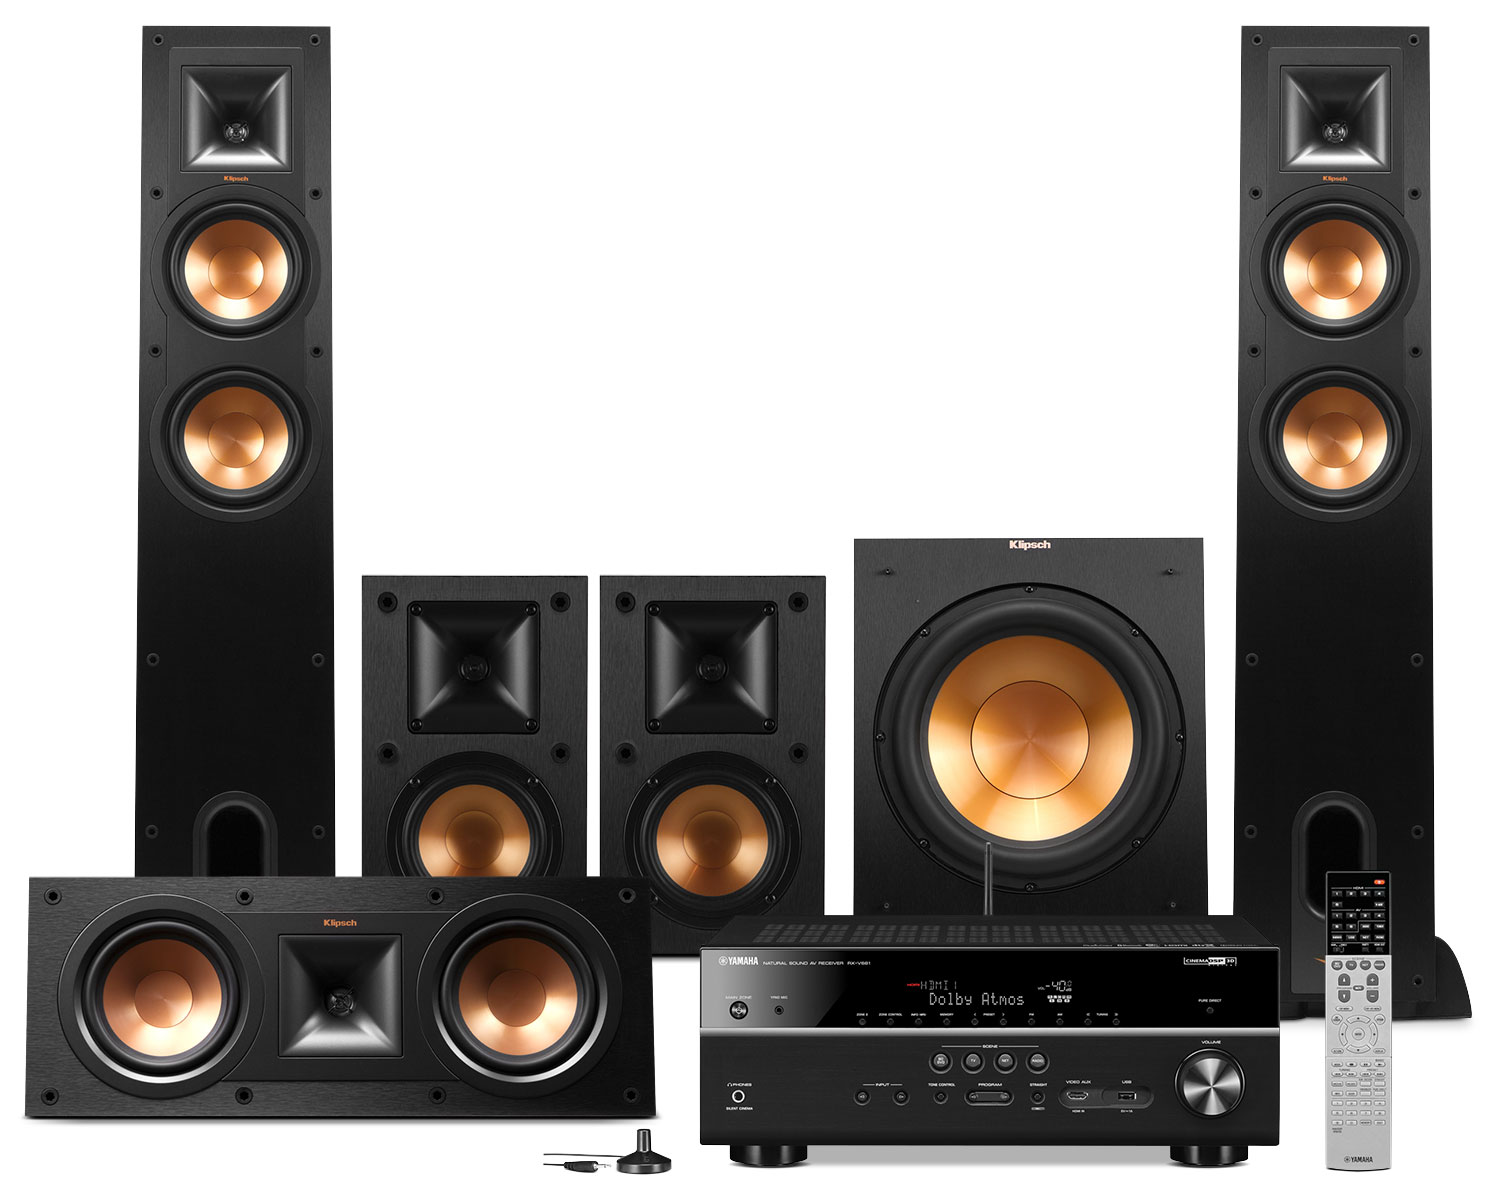 Sound Systems - Yamaha RX-V681 Home Theatre Package with Klipsch Speakers